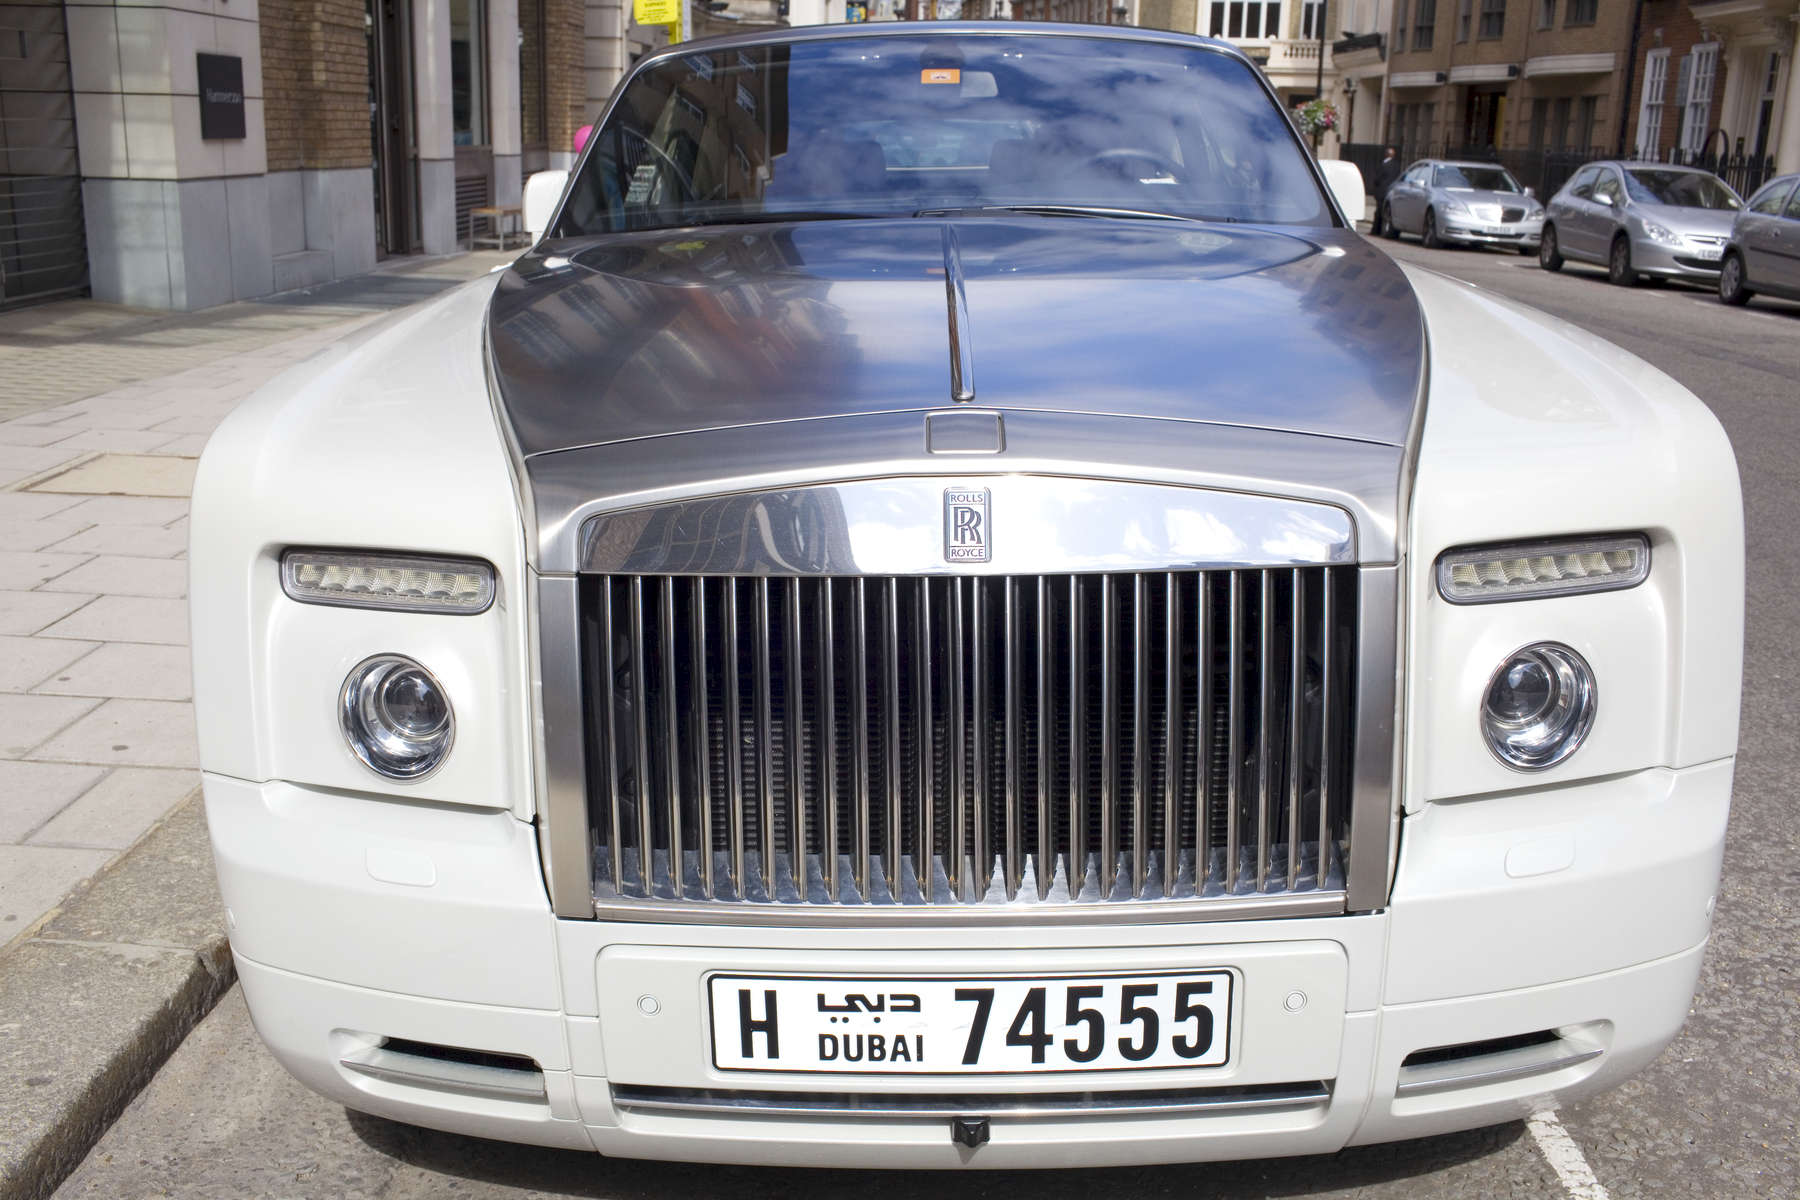 A Dubai BRolls Royce parked on New Bond street, a popular destination for wealthy Arabs in West London.Arabs have been visiting London for centuries and around 300,000 Arabs have chosen to make the capital their home and a further half a million throughout the UK. The number swells significantly from visitors during the summer. Saudi Arabians spend the most on property in London choosing Belgravia, Kenington, Knightsbridge and Holland Park. Arab culture continues to increase in visibility throughout the capital as integration into this most transient of city's continues.©Peter Dench/Reportage by Getty Images